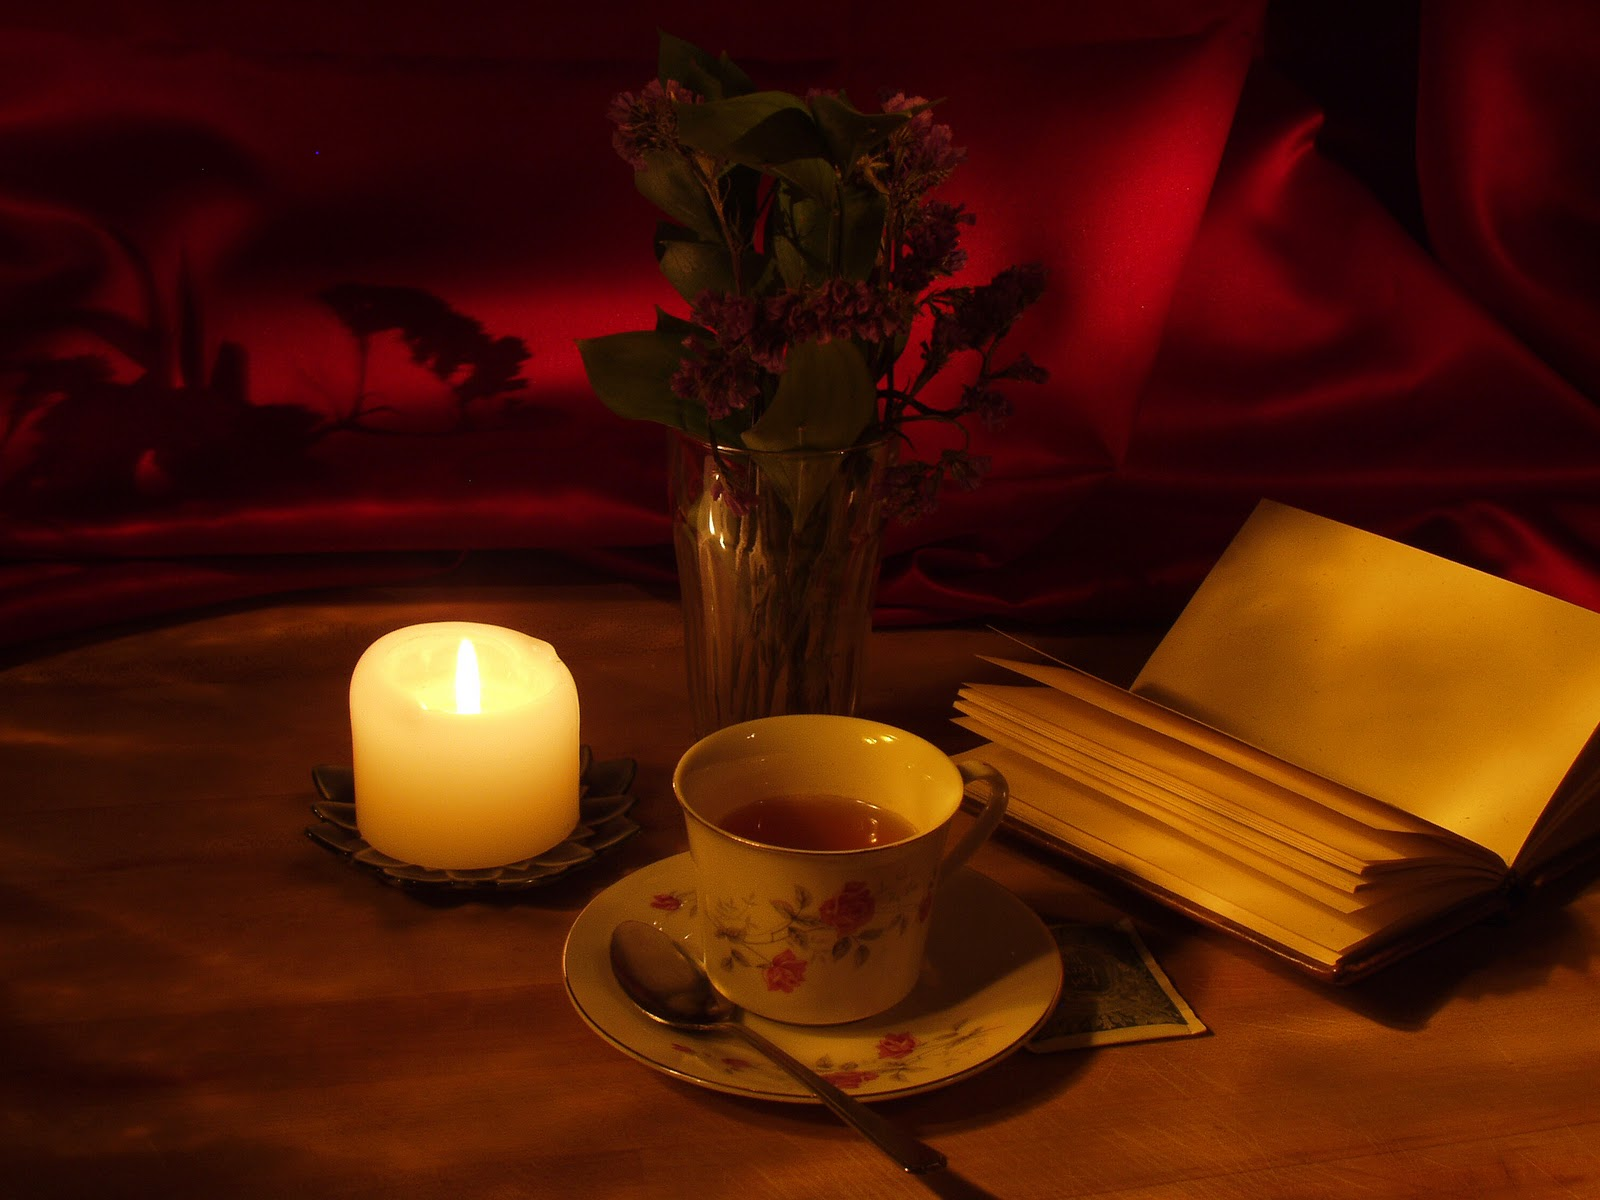 7 Best Tea Books To Make You An Expert in 2020